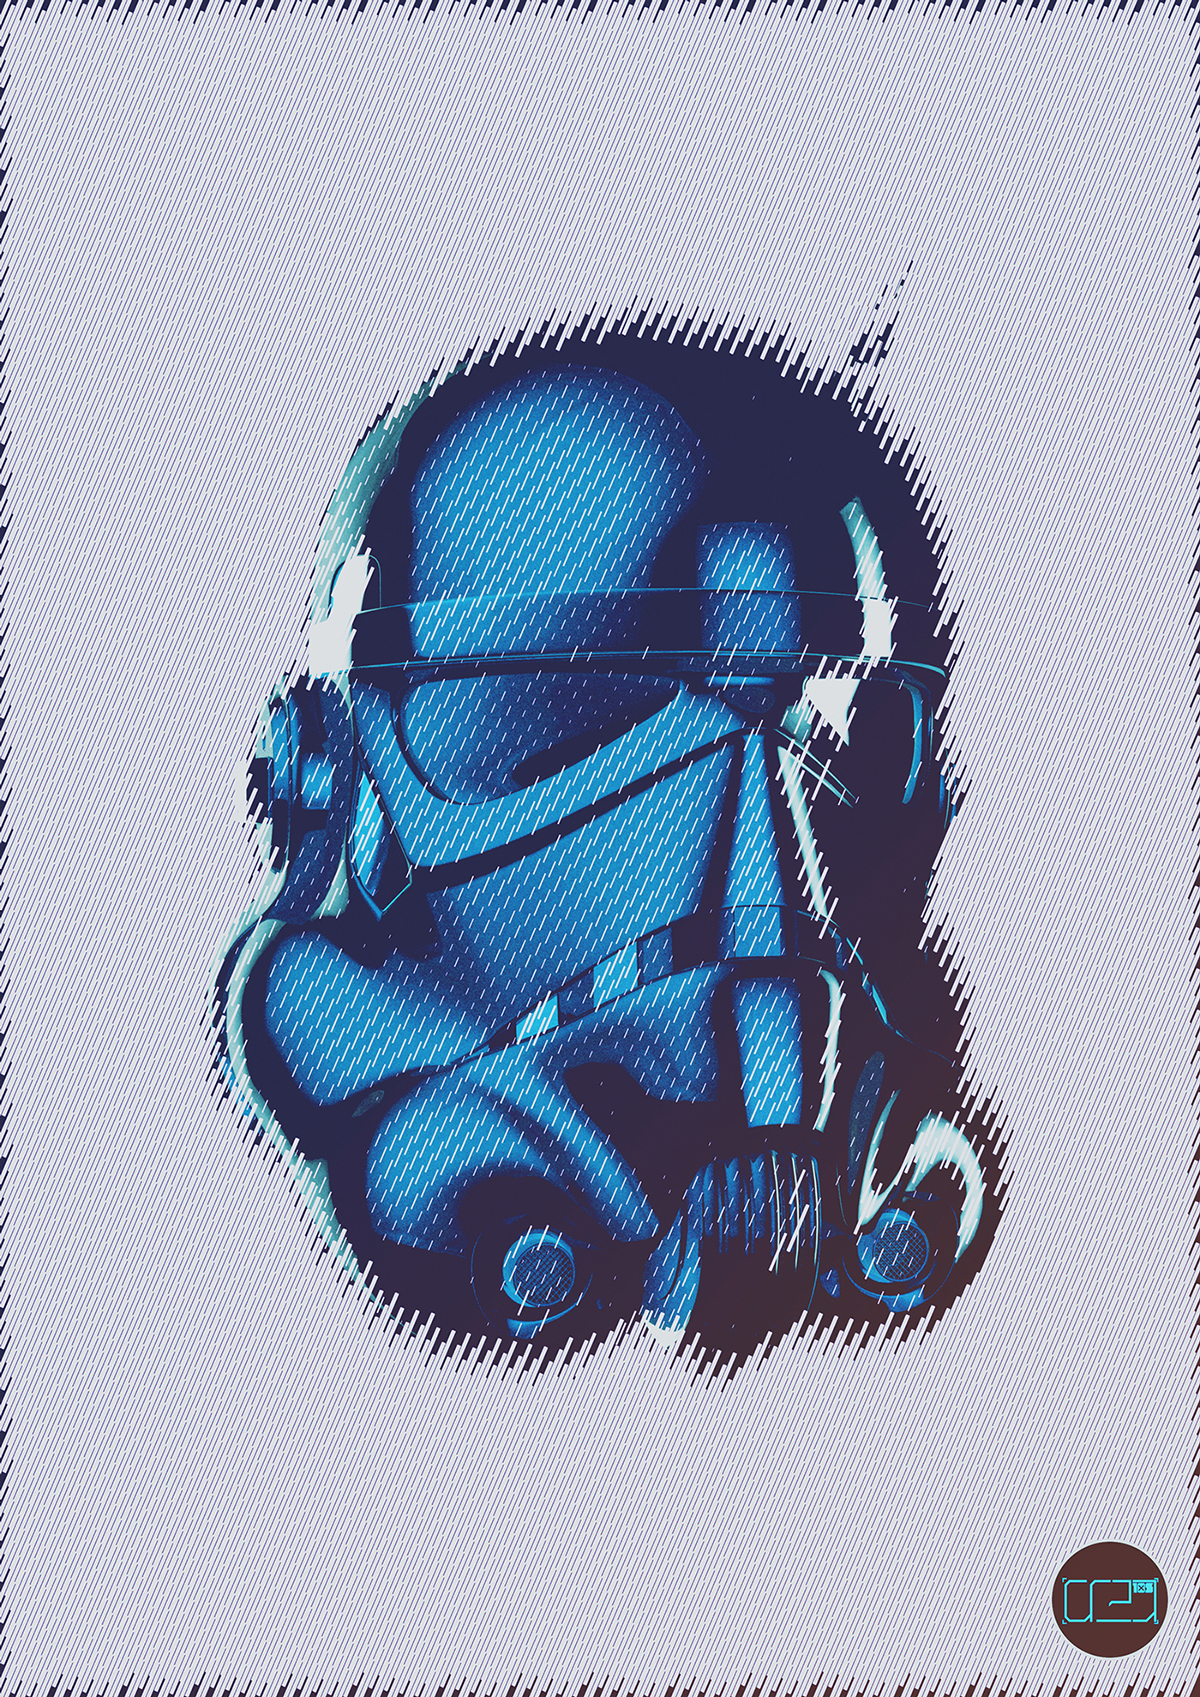 Star Wars Posters1